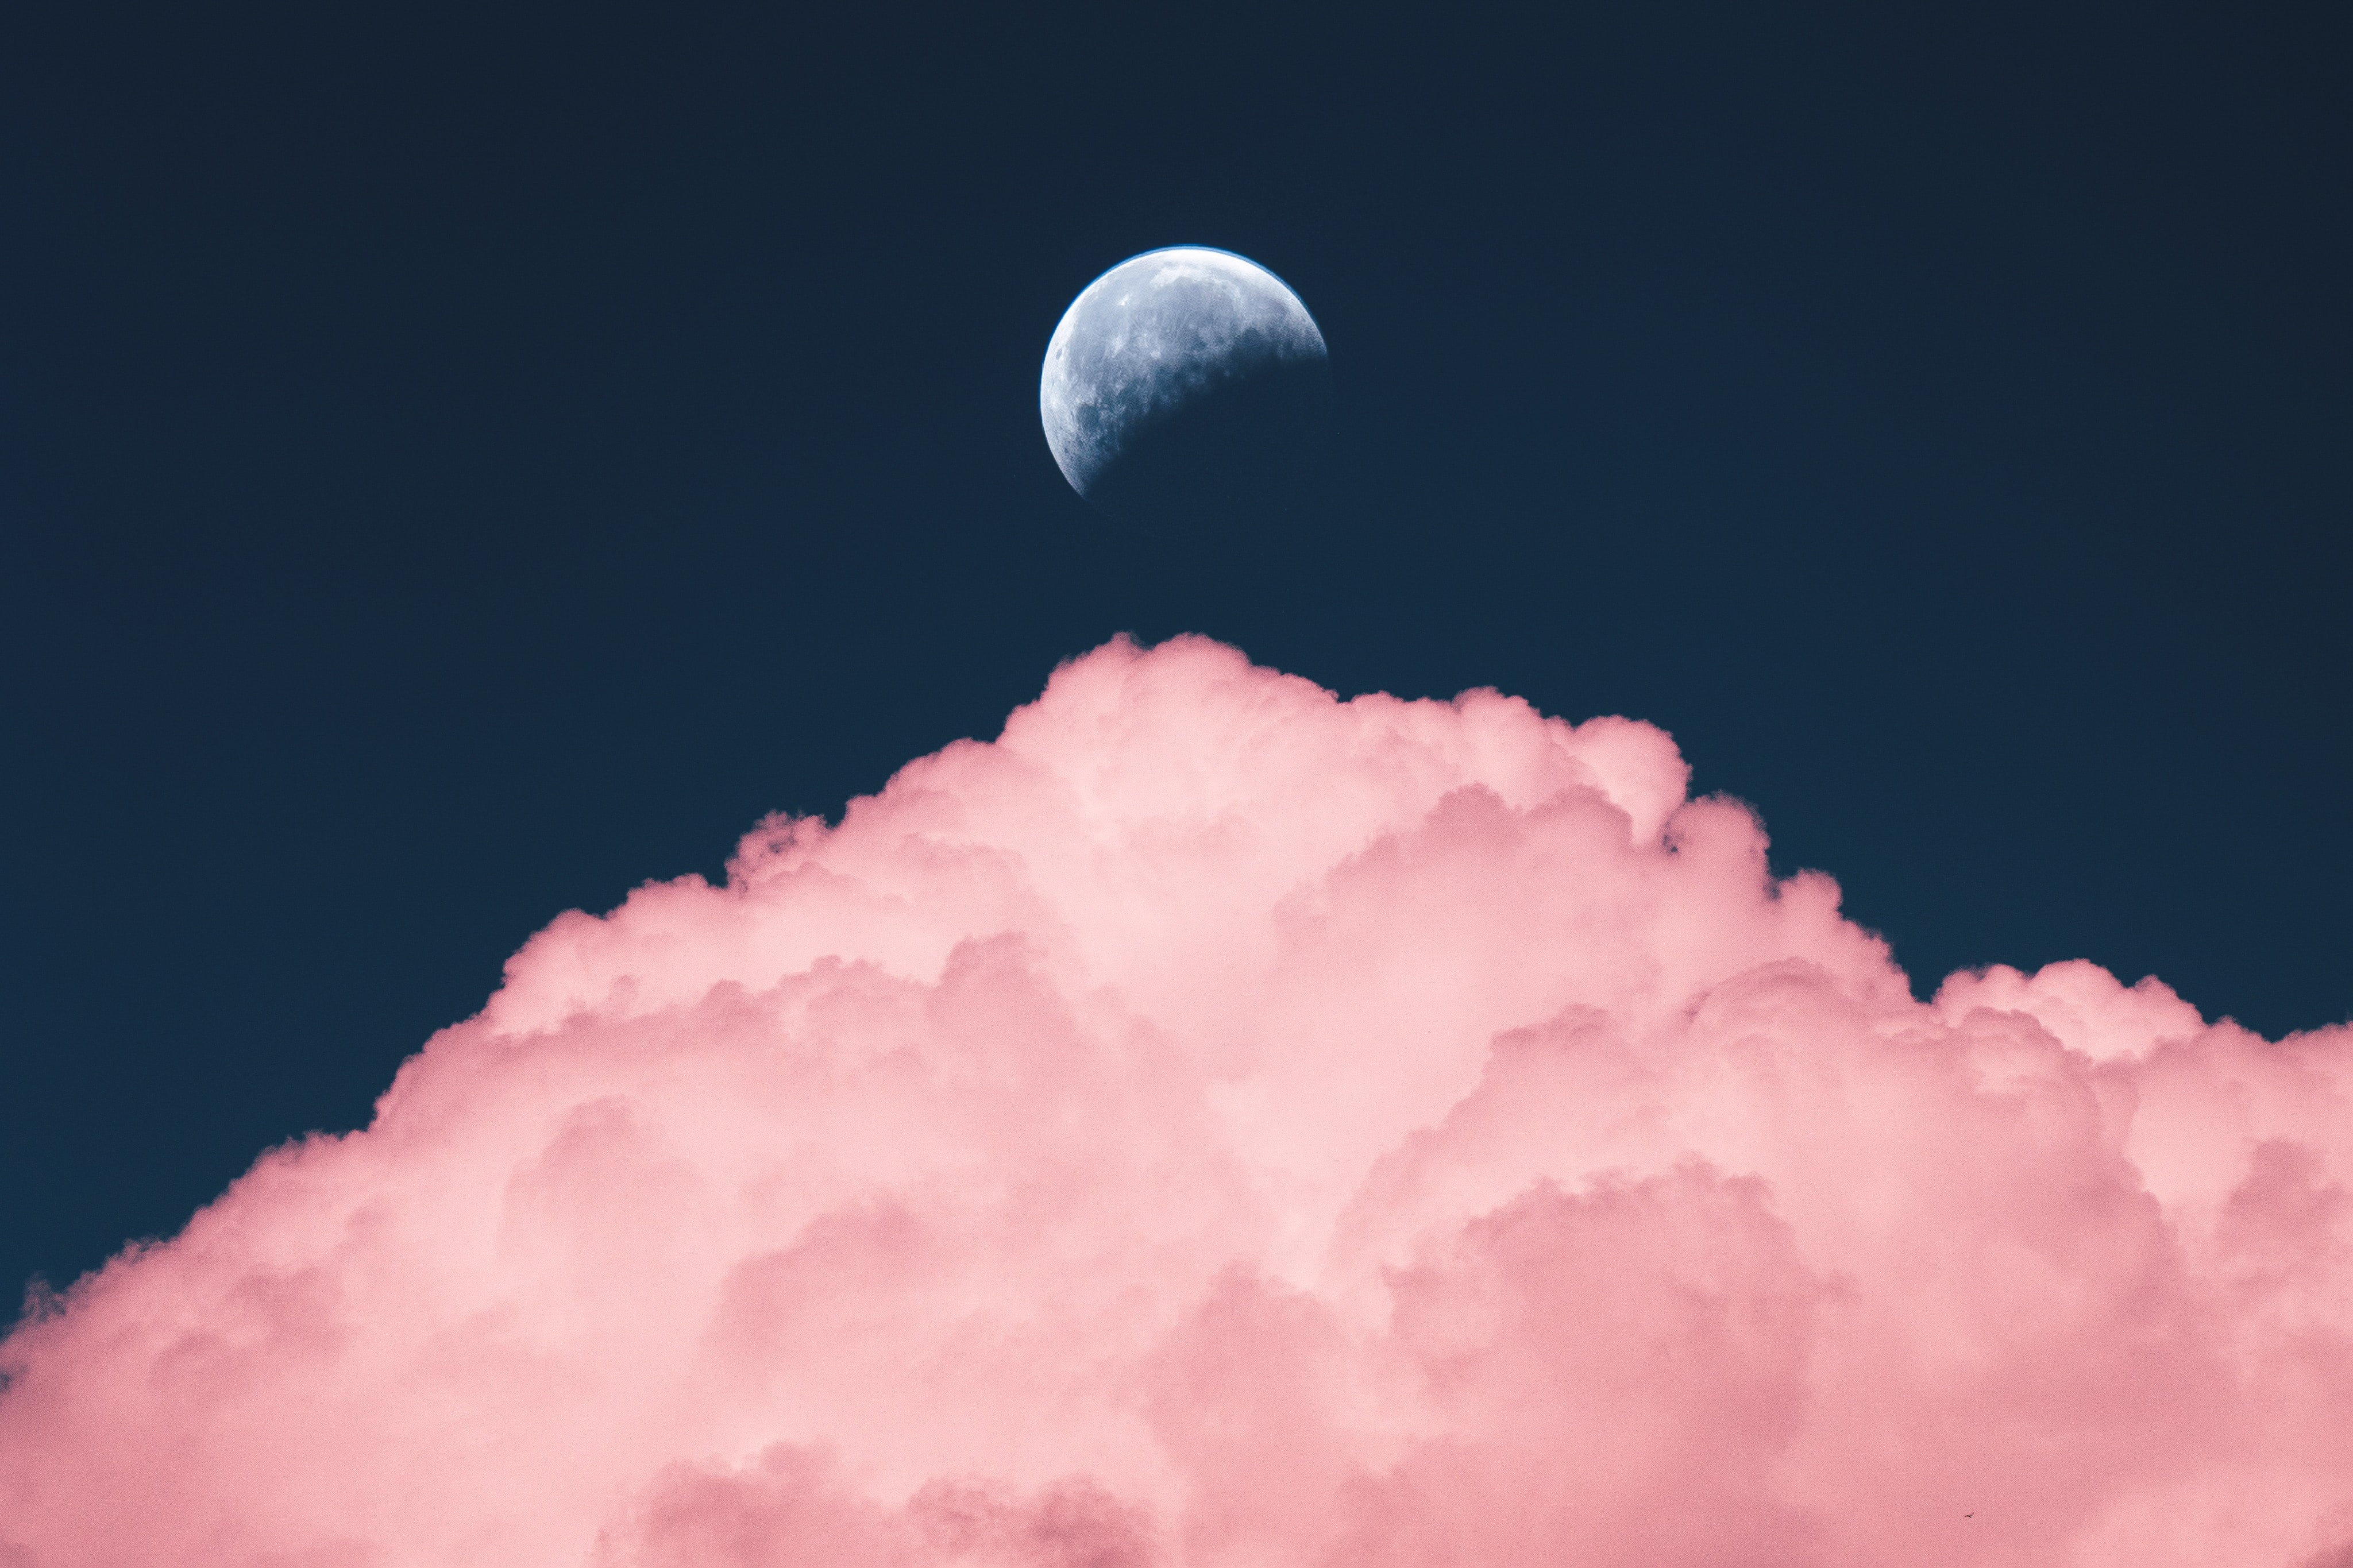 114353 download wallpaper Nature, Sky, Pink, Moon, Cloud screensavers and pictures for free